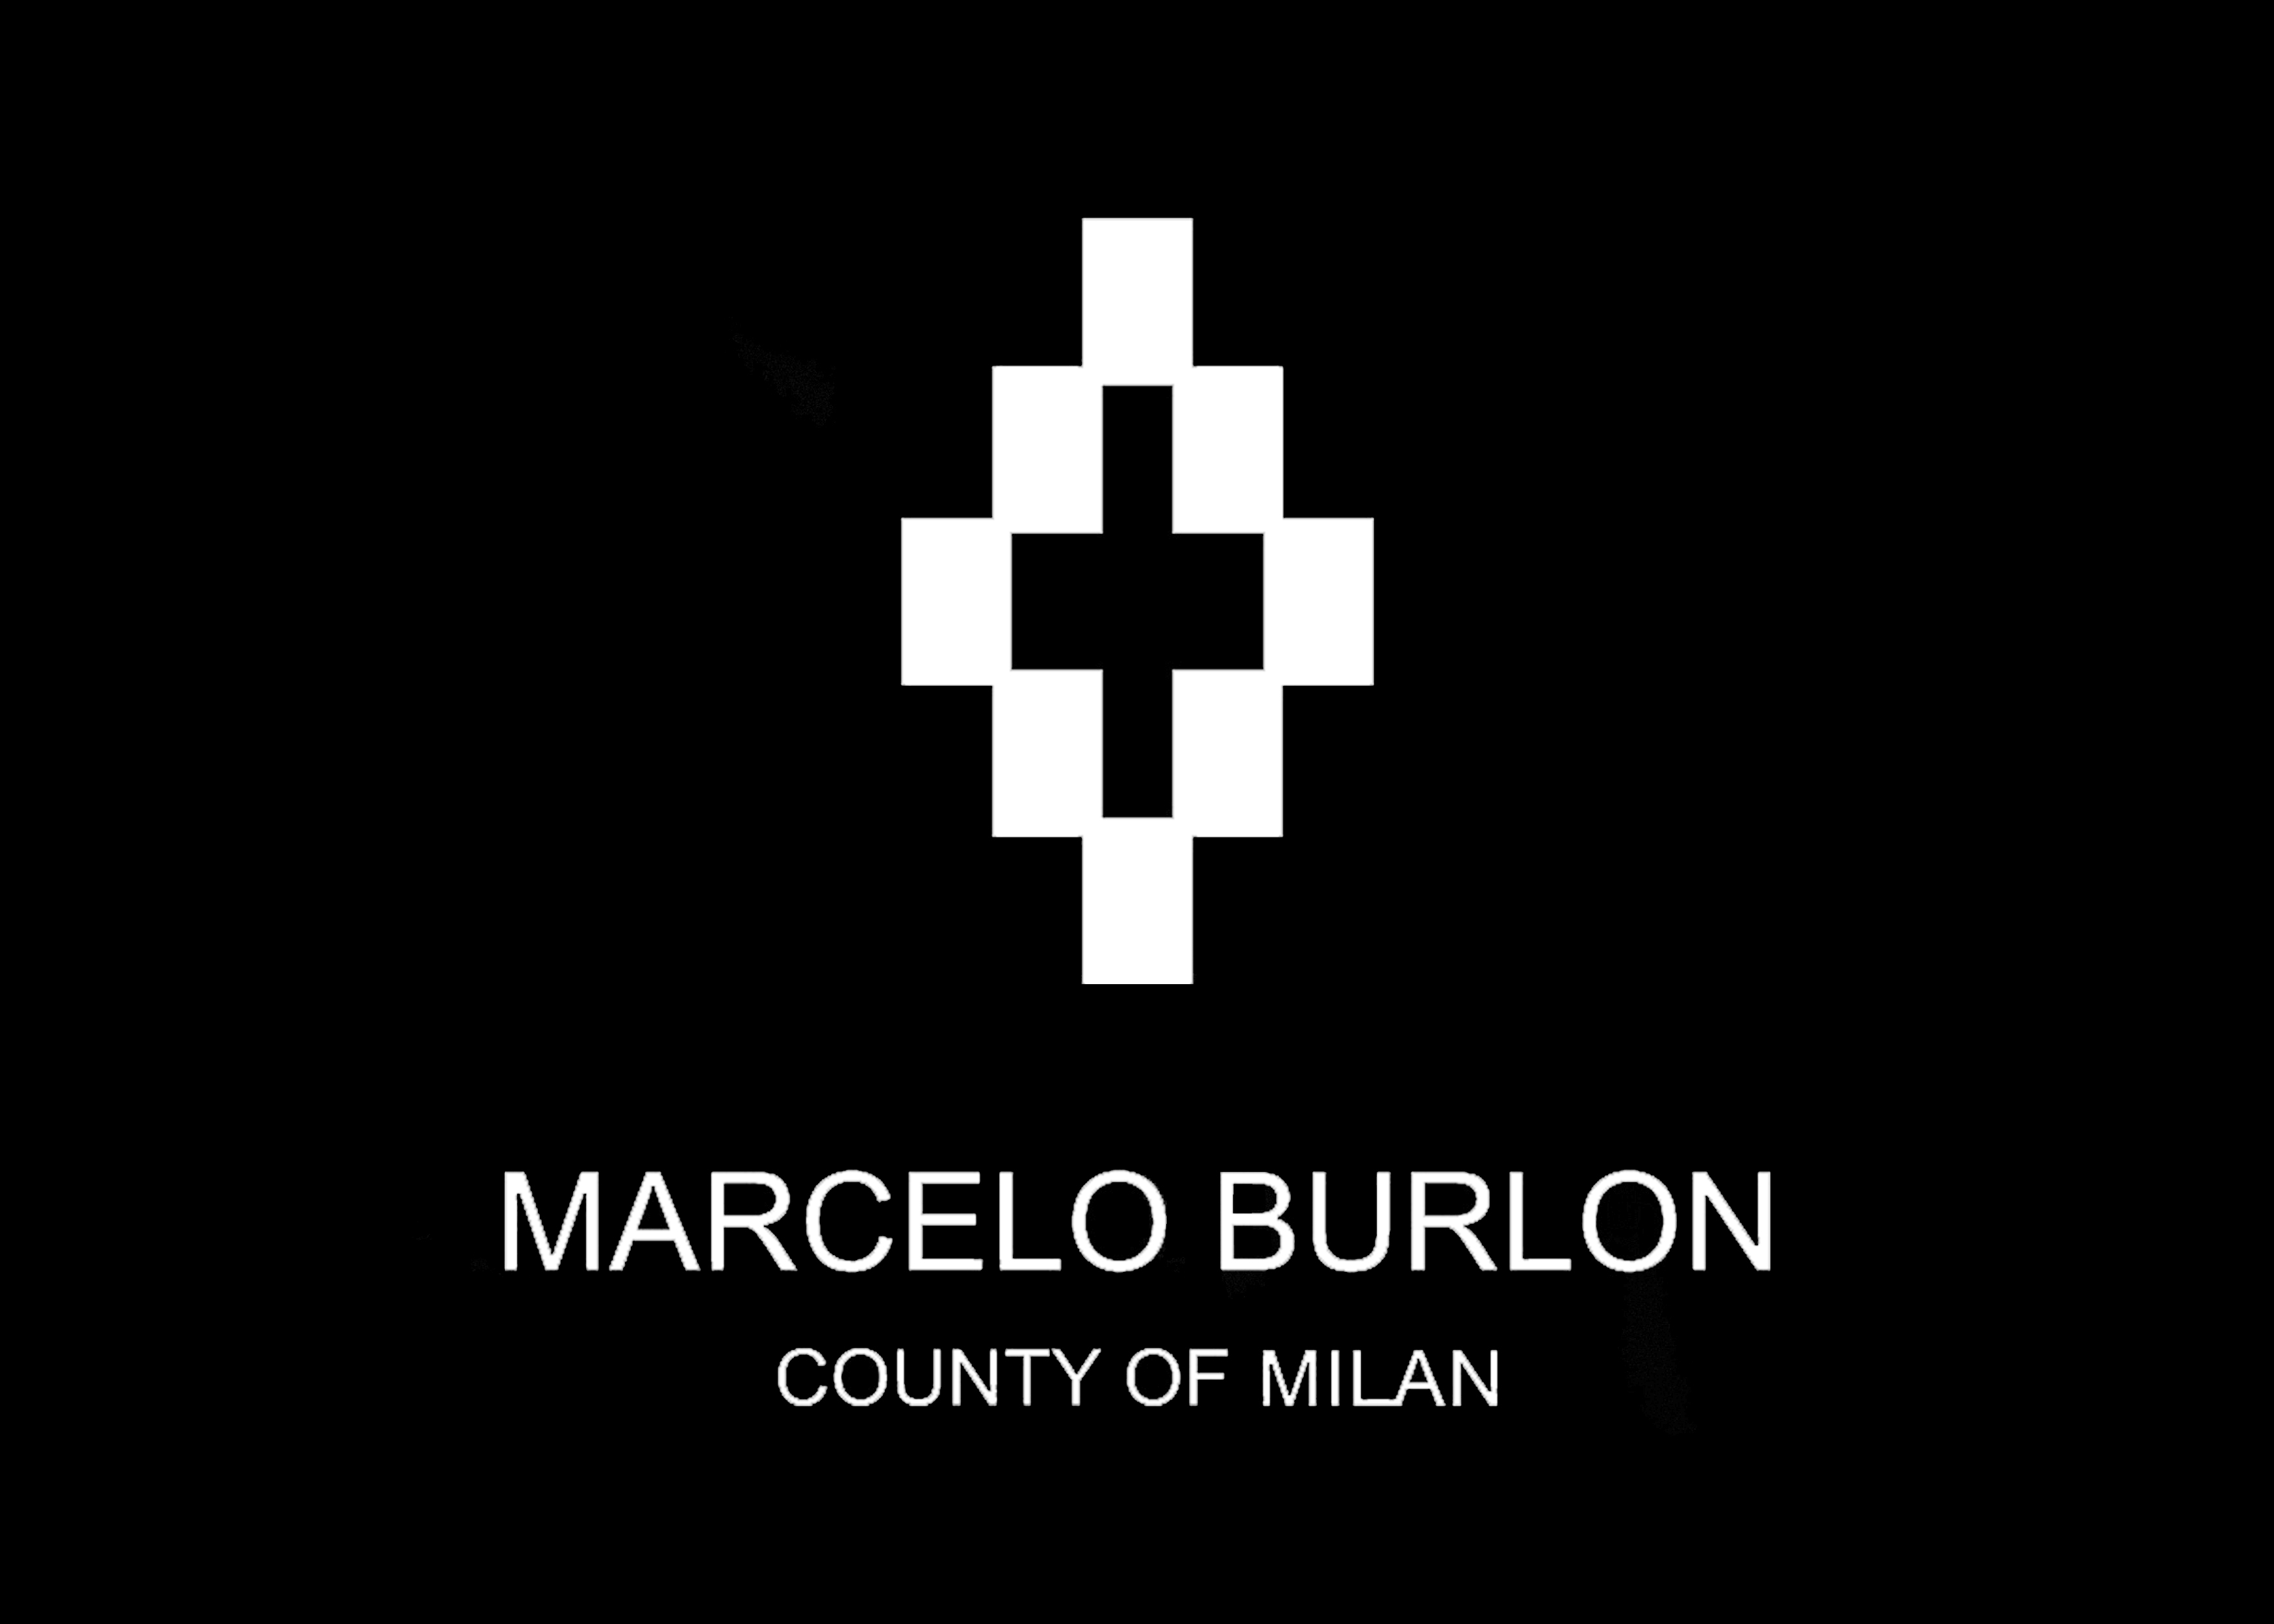 MILANO WOMAN/MAN WEEK - 06/17 - M.Burlon in Via Tortona 31 - 1